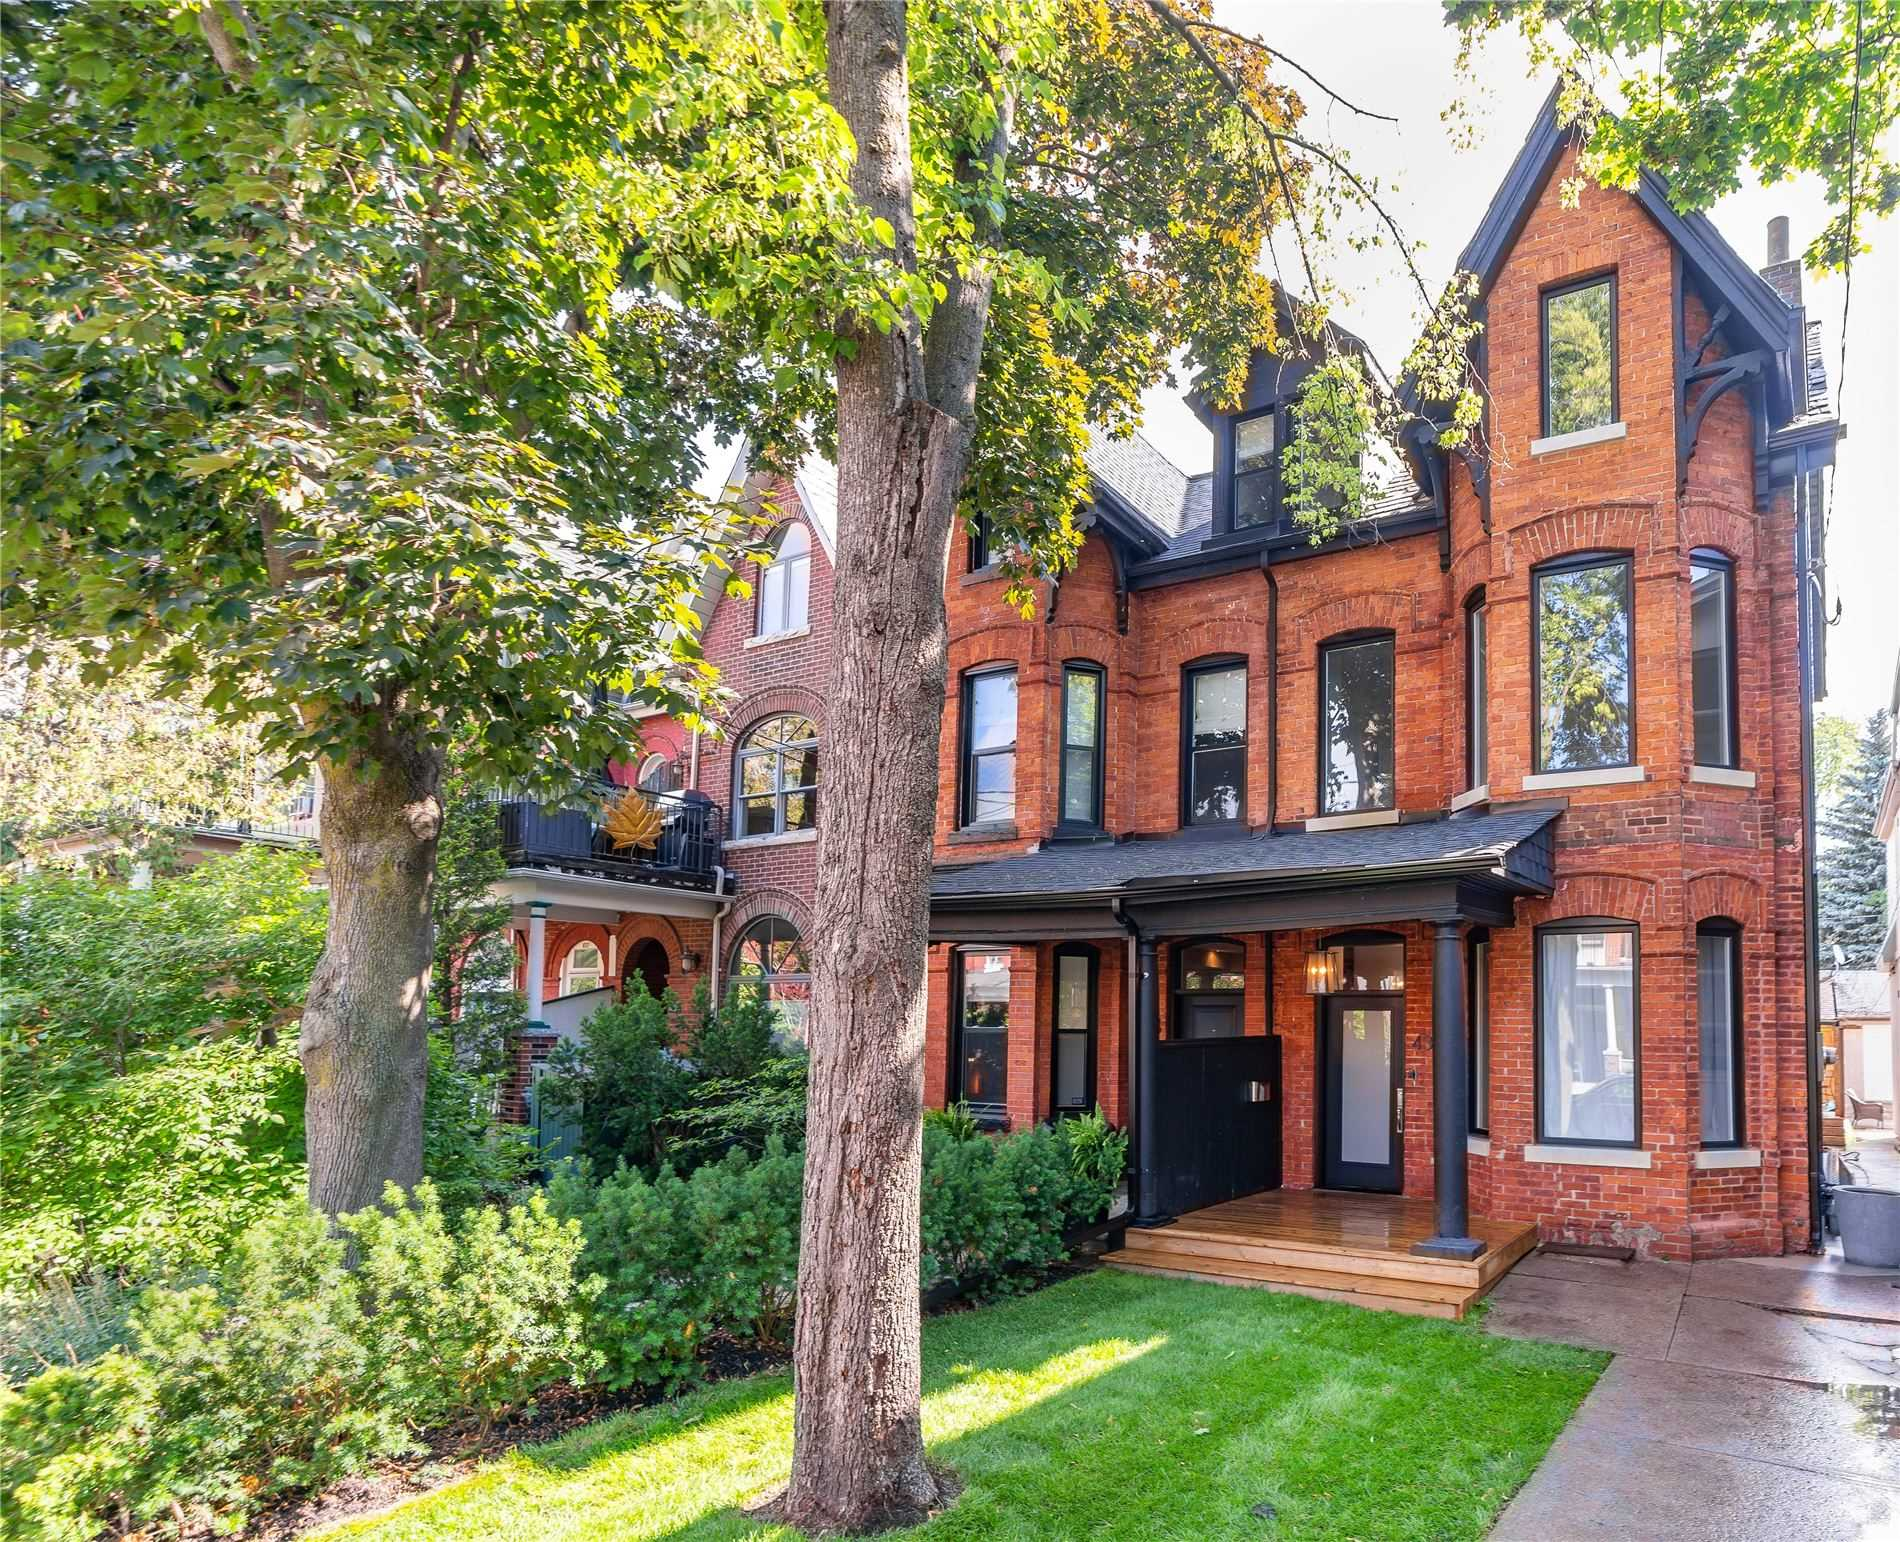 431 Euclid Ave, Toronto, Ontario M6G2T1, 6 Bedrooms Bedrooms, 11 Rooms Rooms,3 BathroomsBathrooms,Semi-detached,For Sale,Euclid,C4855915